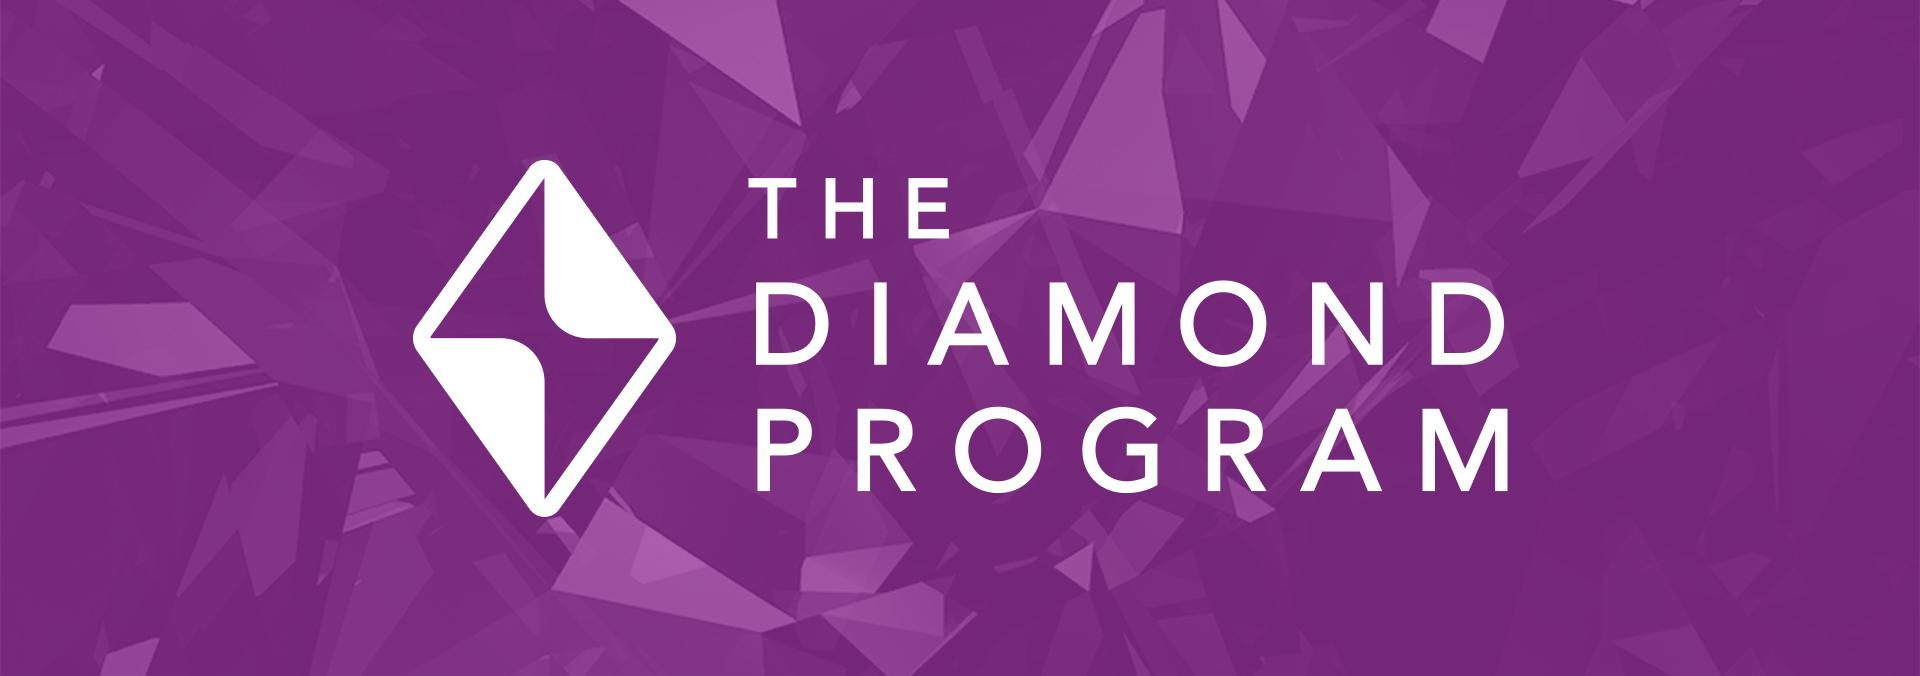 The Diamond Program in GTA Online: Special Rewards at The